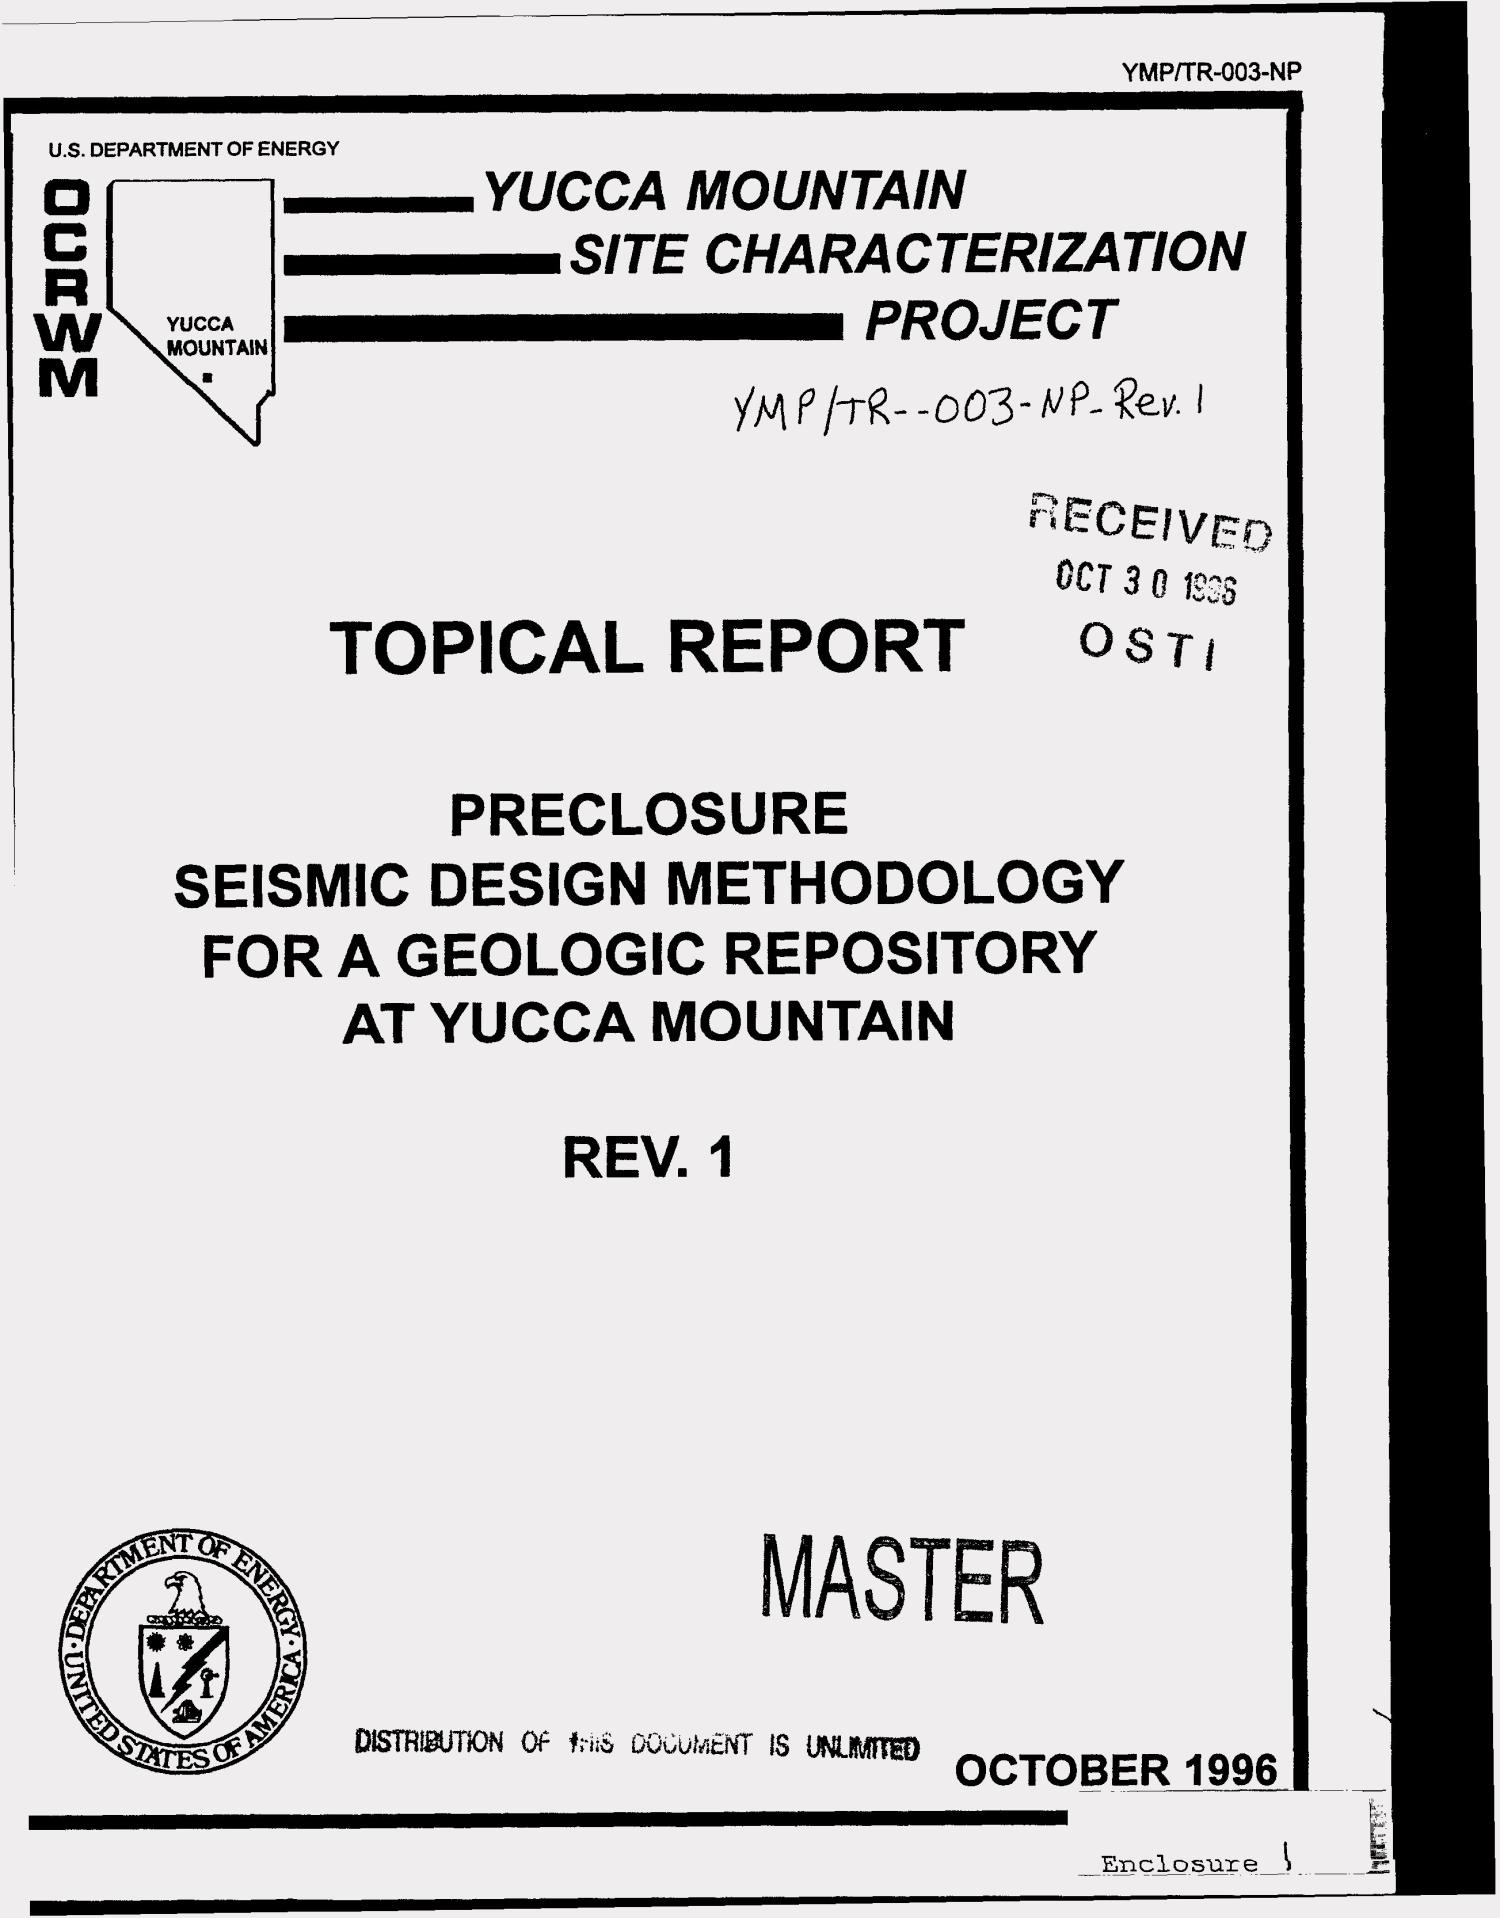 Preclosure seismic design methodology for a geologic repository at Yucca Mountain. Topical report YMP/TR-003-NP                                                                                                      [Sequence #]: 1 of 129